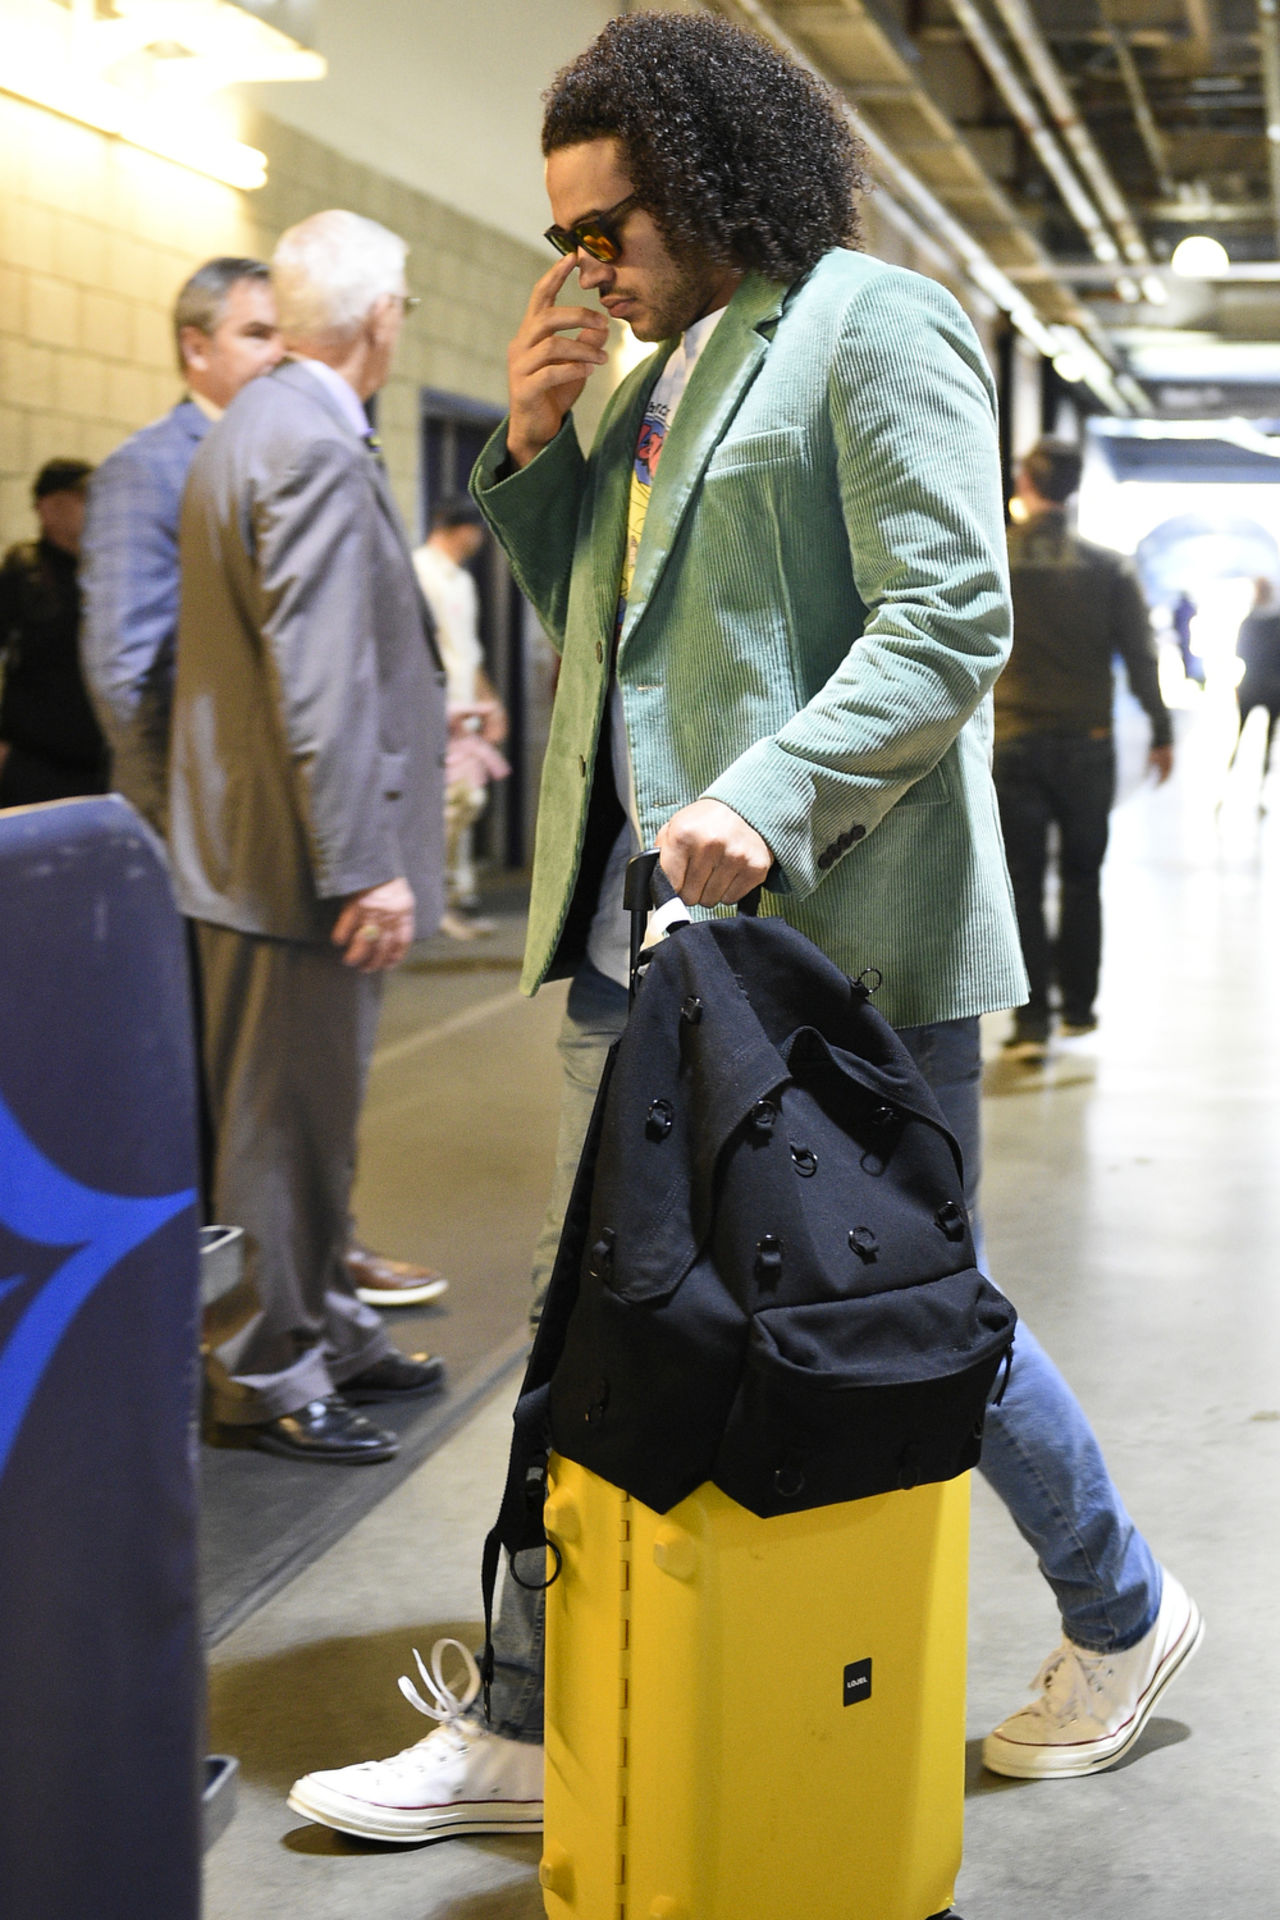 Minnesota Vikings middle linebacker Eric Kendricks arrives before an NFL football game against the Los Angeles Chargers Sunday, Dec. 15, 2019, in Carson, Calif.